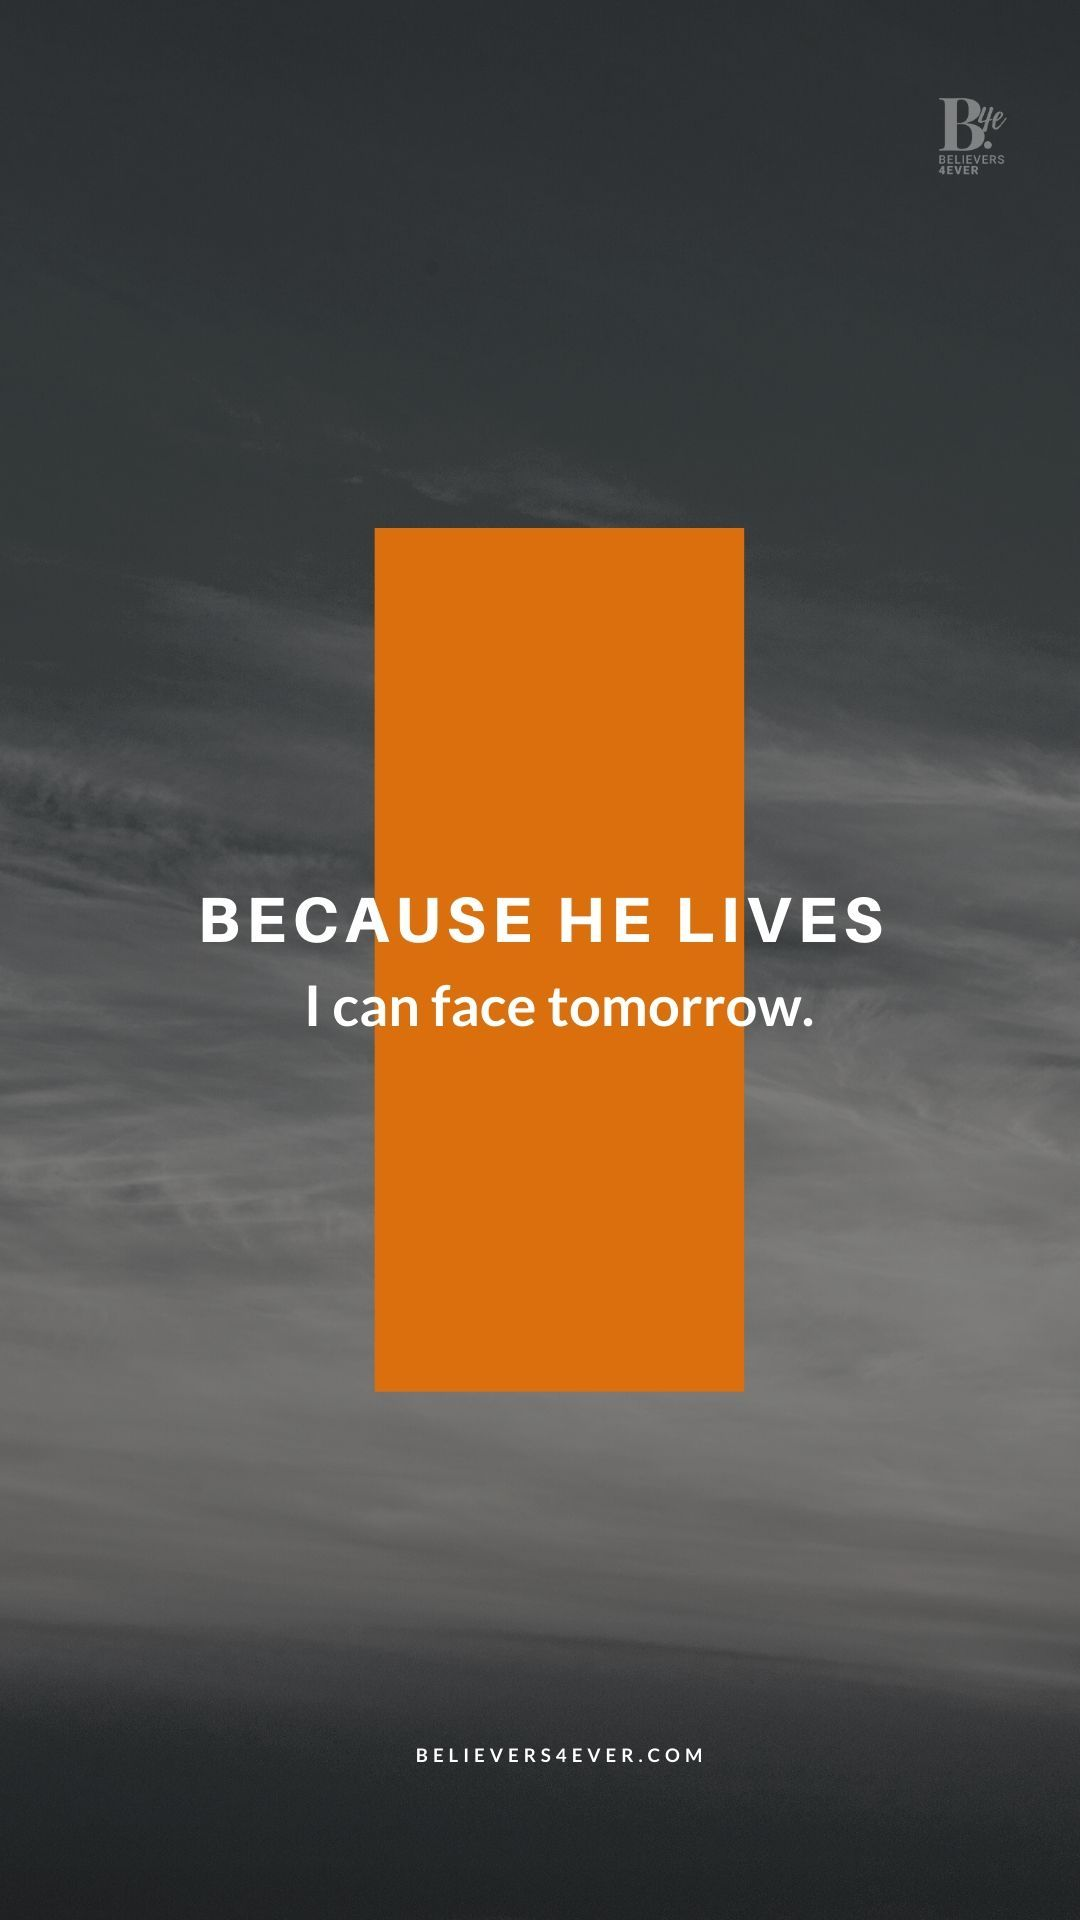 Because He Lives Believers4ever Com Because He Lives Christian Iphone Wallpaper Worship Wallpaper You can also upload and share your favorite original iphone x wallpapers. because he lives believers4ever com